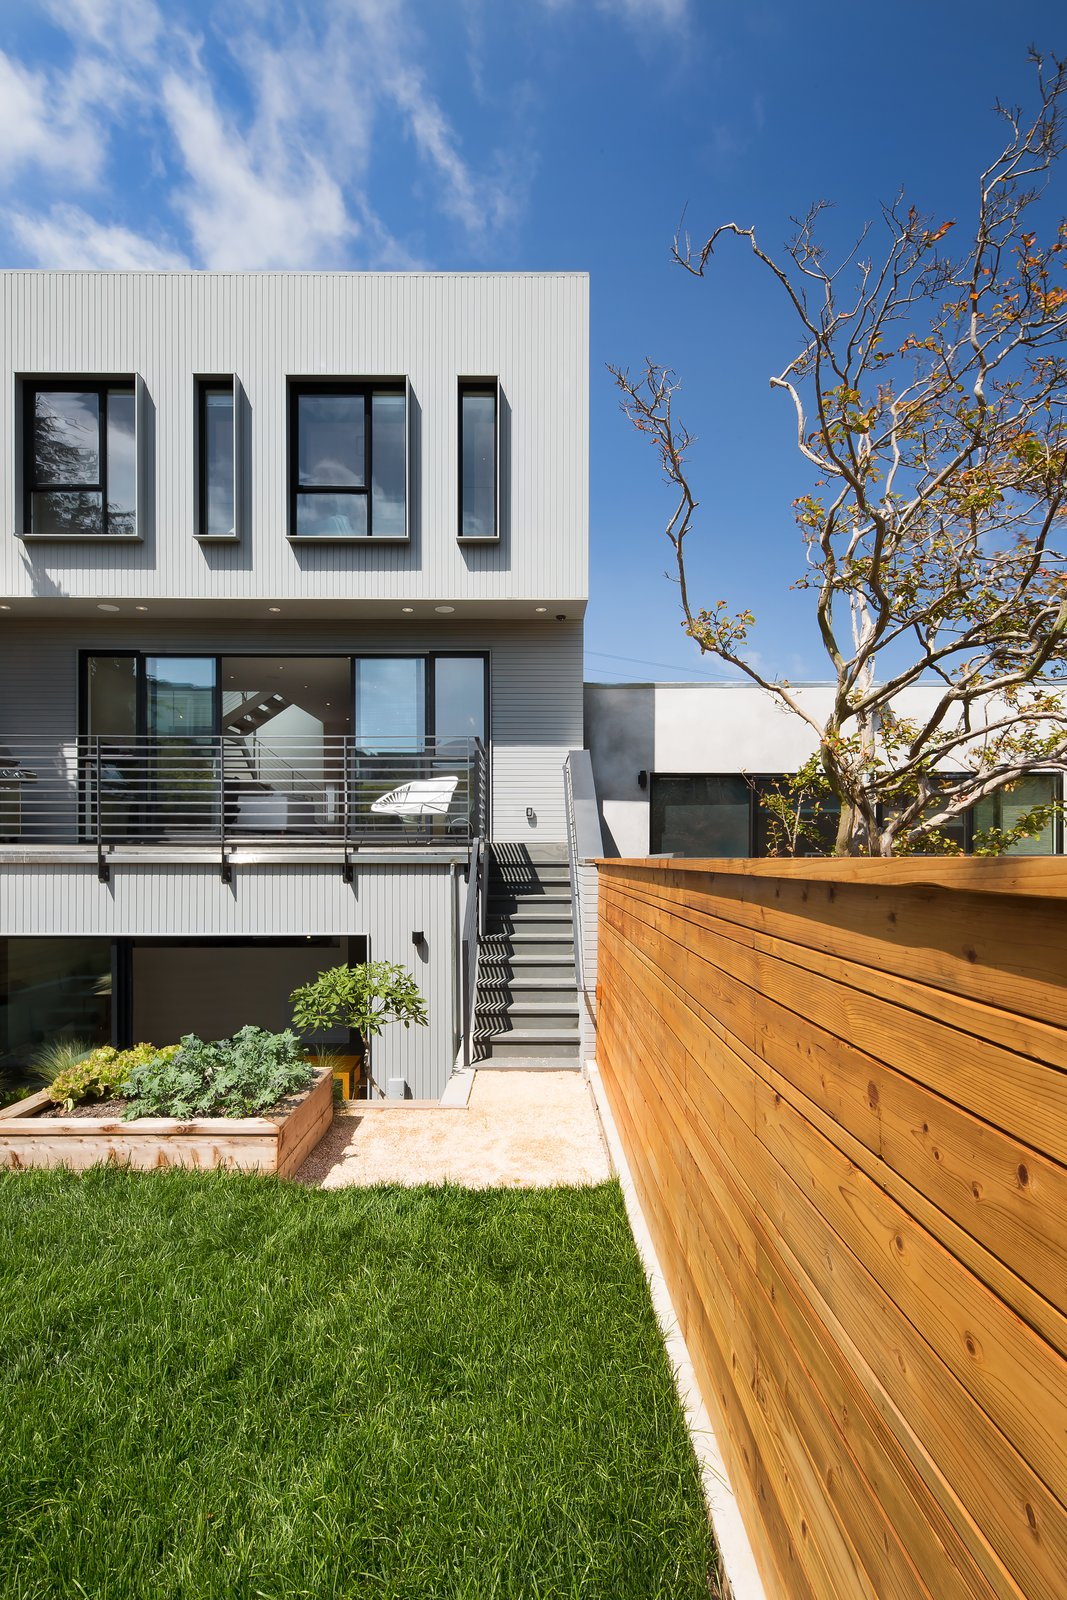 Rear facade 27th Street - Noe Valley by patrick perez/designpad architecture